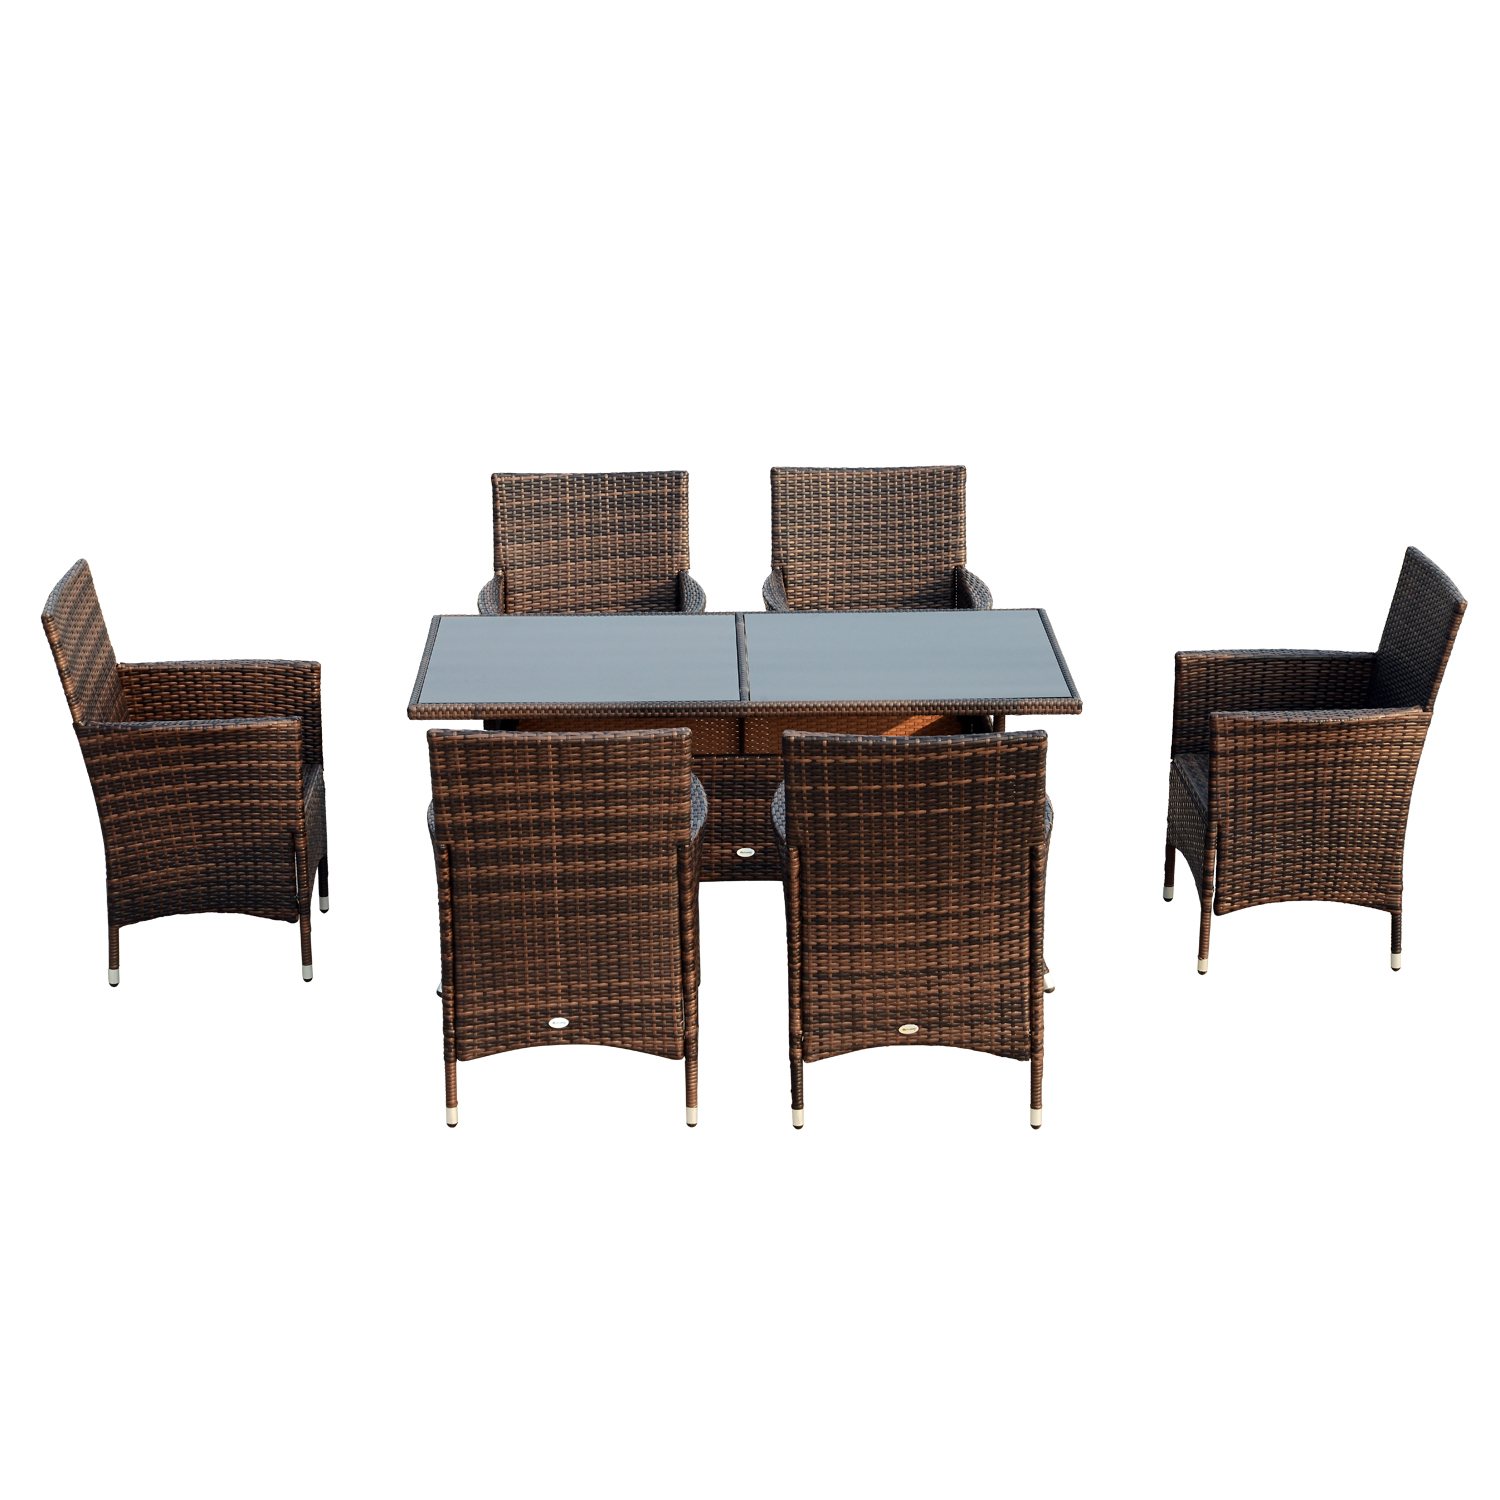 Image of £329.99 Outsunny 7 Pieces Rattan Dining Set, Galvanized Steel-Brown / PC Wicker Furniture Garden Outdoor 6 Seater Set Rectangular Glass Topped Table Armrest Chair - Brown Patio Chairs 861-023BN 5056029887578